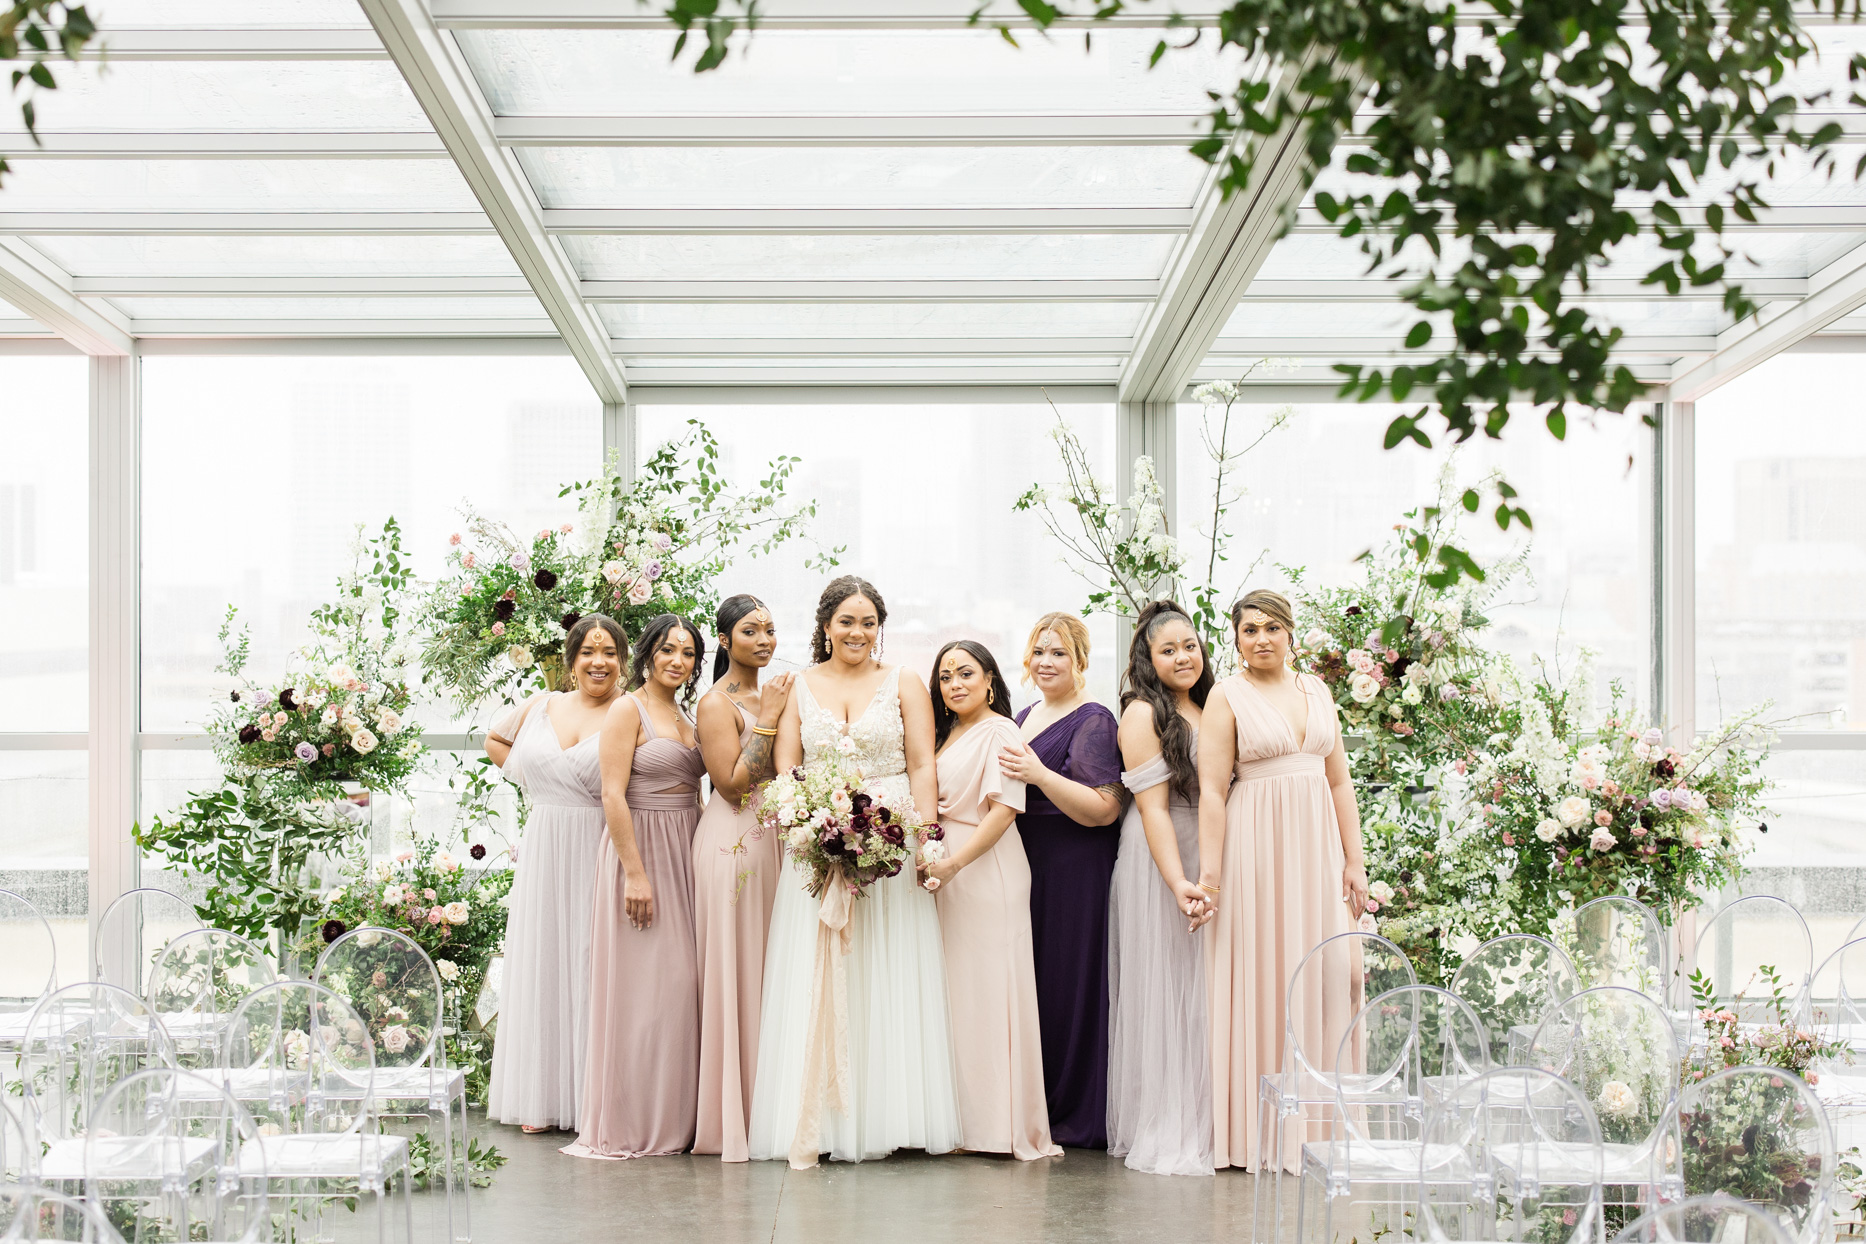 bridesmaids in shades of pink and purple at ceremony location